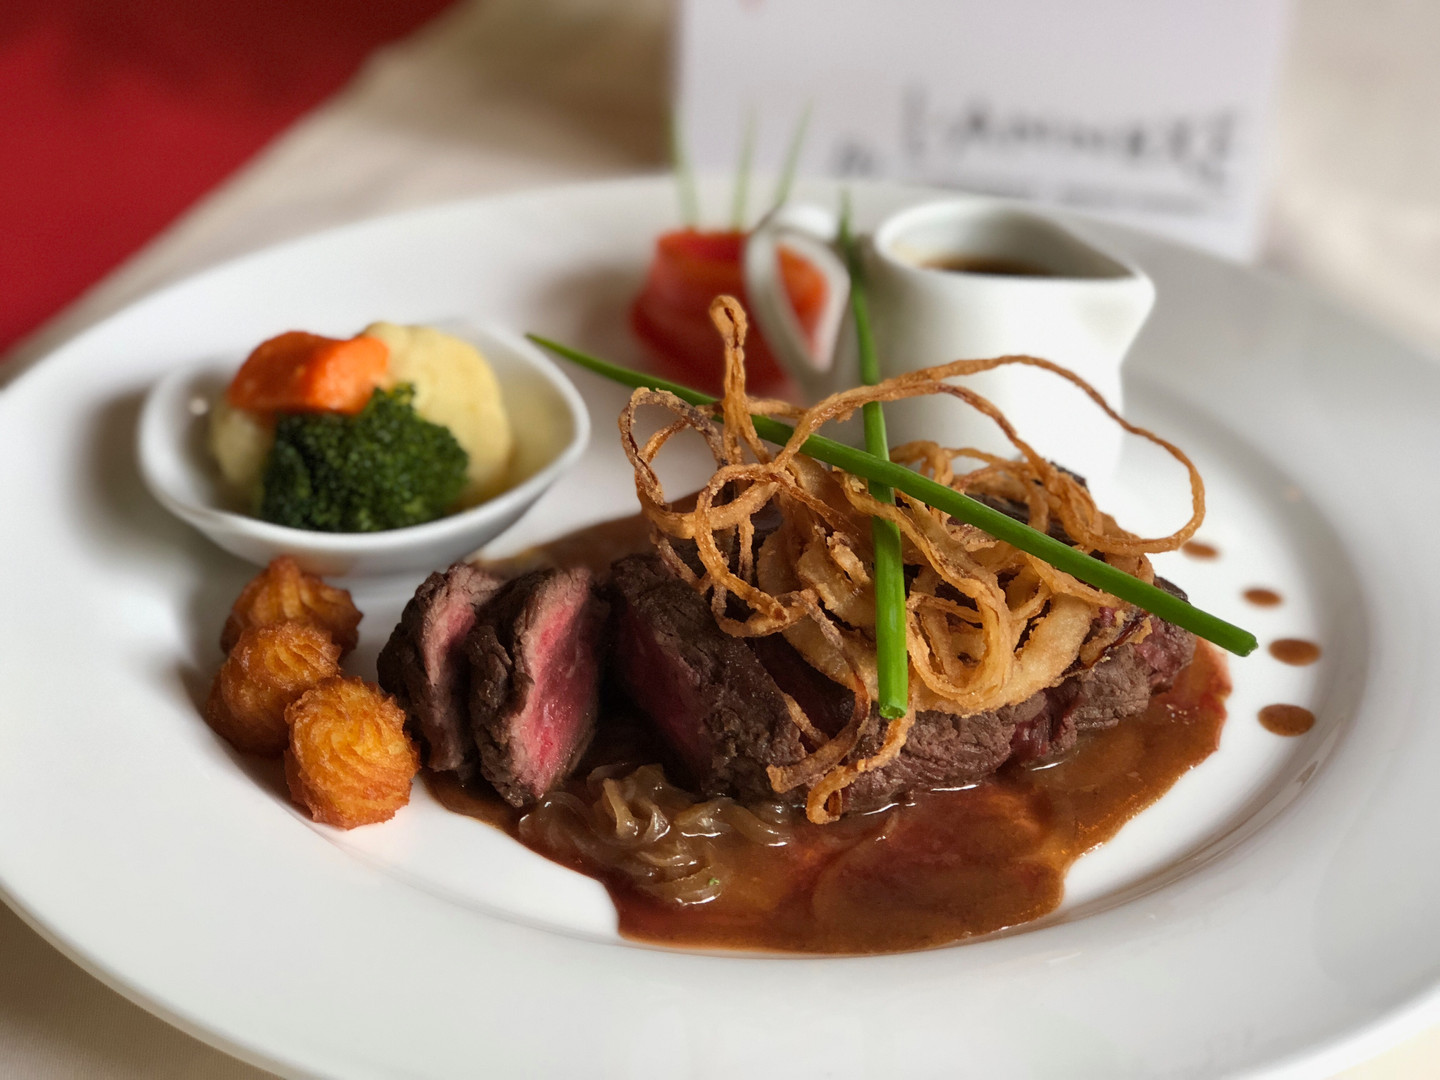 Steak of beef hanging by L'Annexe french restaurant in siem reap.jpg